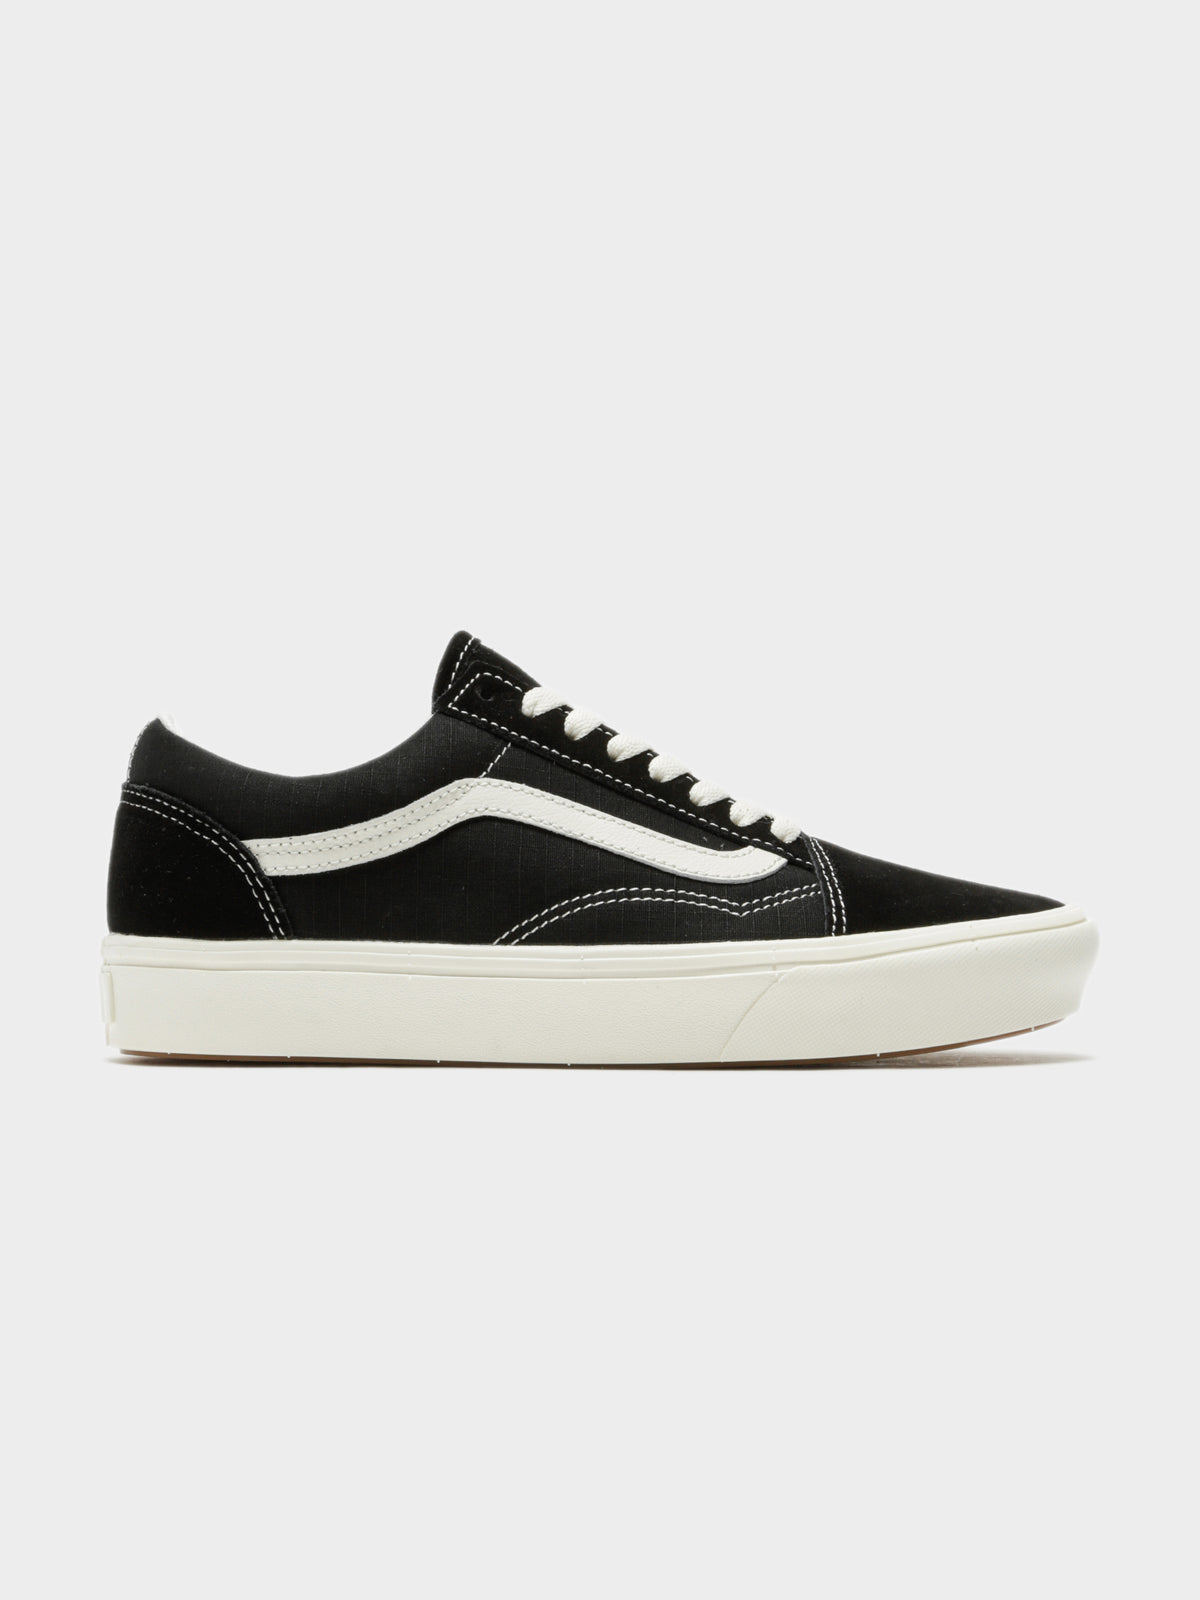 Comfycush Old Skool Ripstop Sneakers in Black